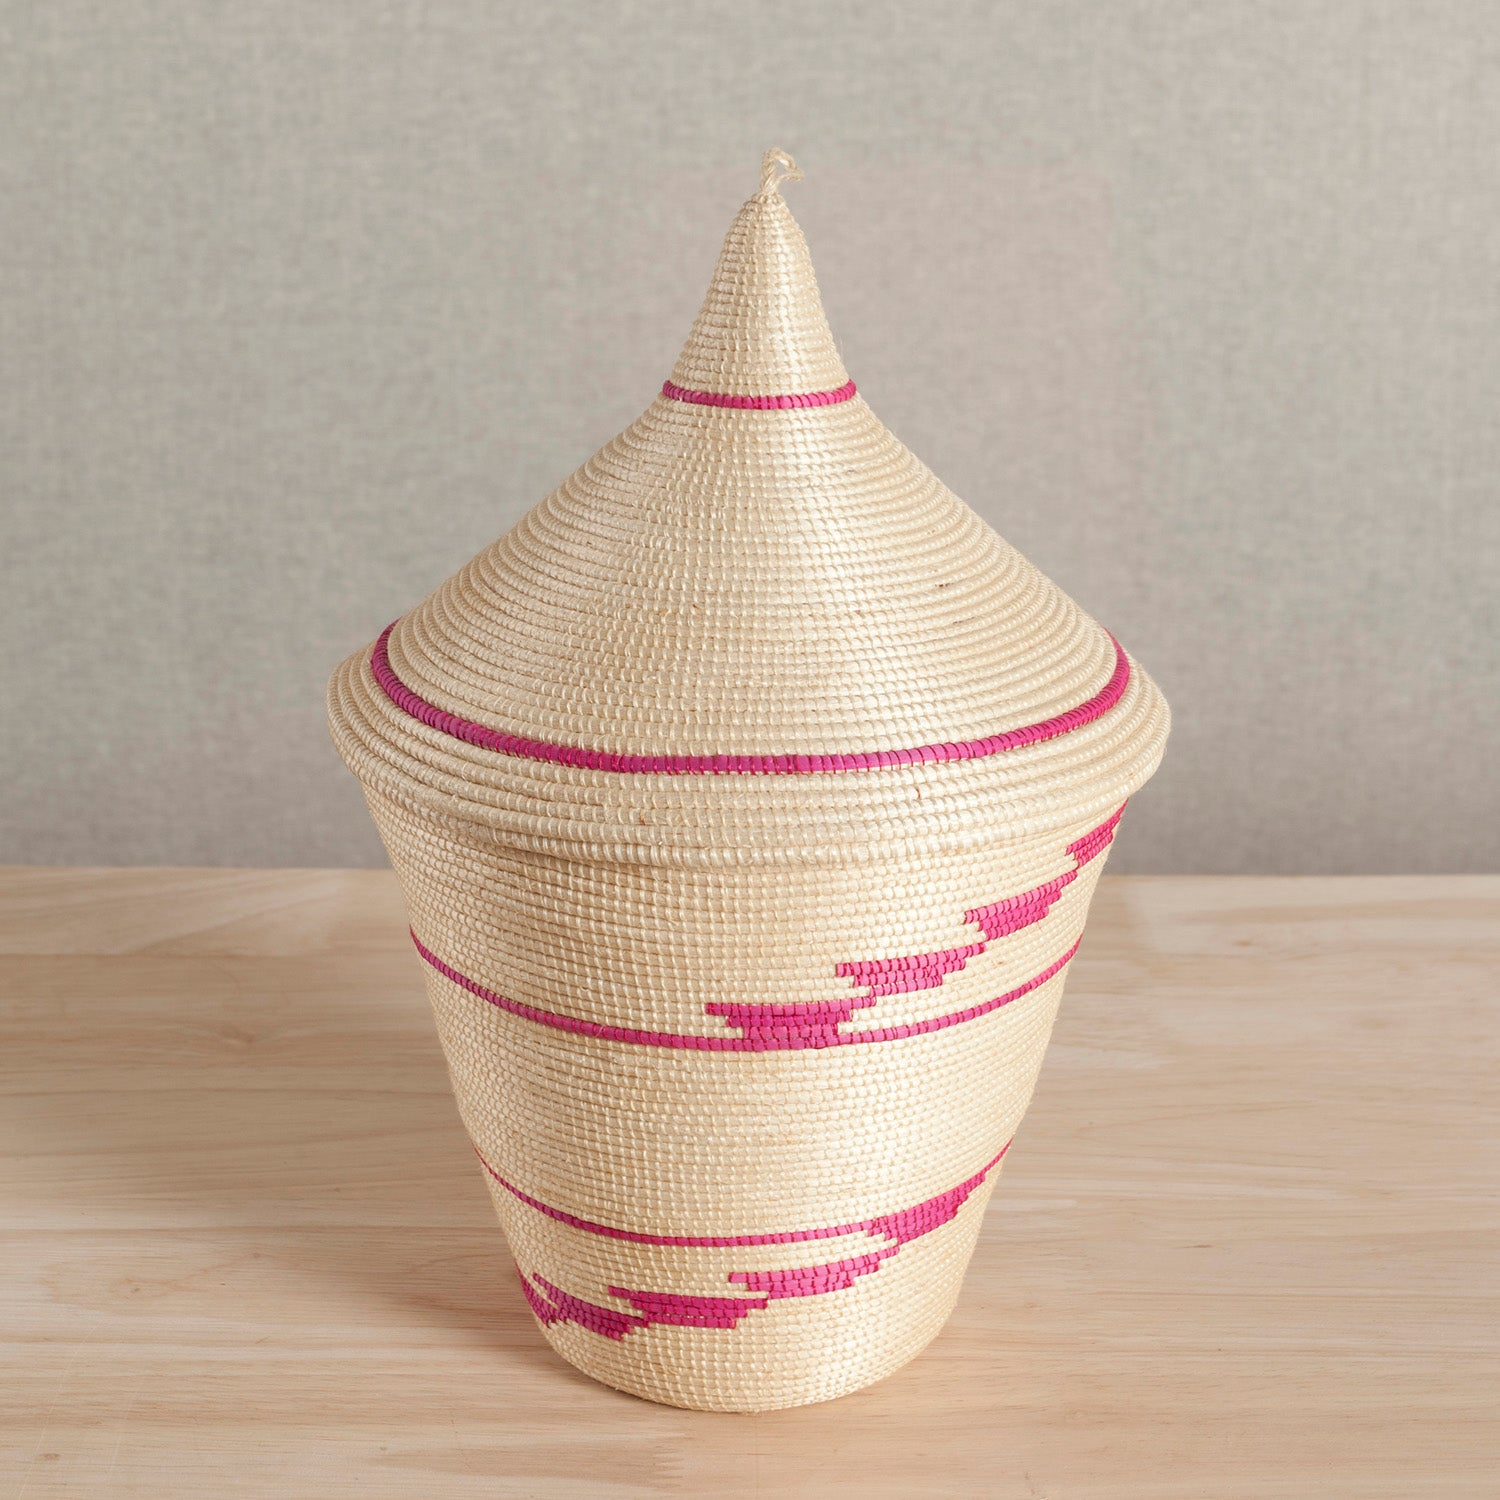 Rwandan Peace Basket - Eyaas